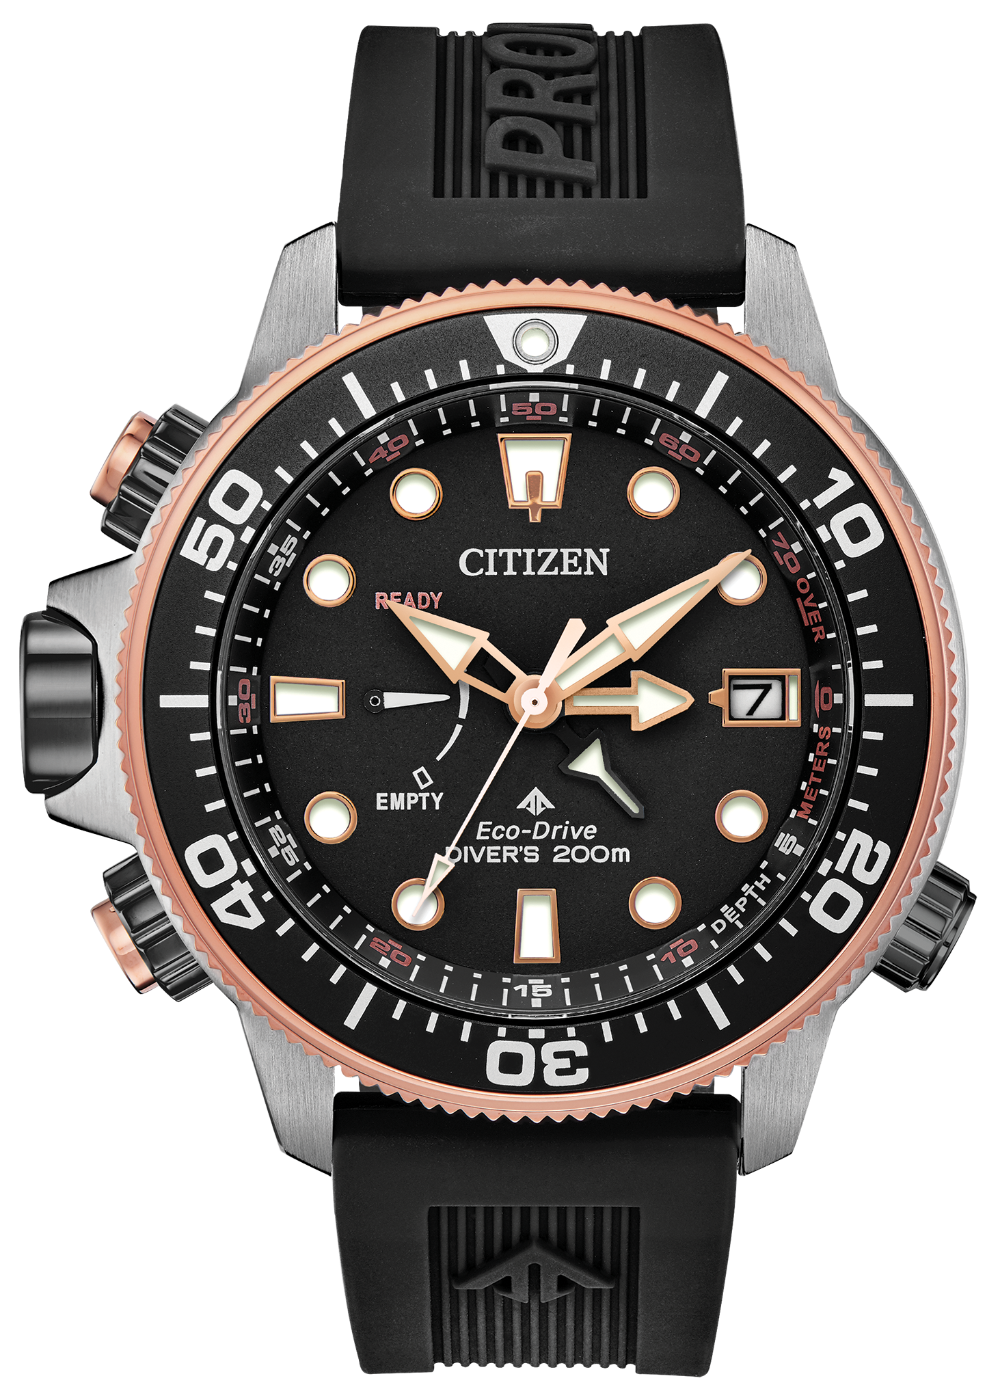 Citizen BN2037-03E Promaster Aqualand Limited Edition Eco-Drive Watch